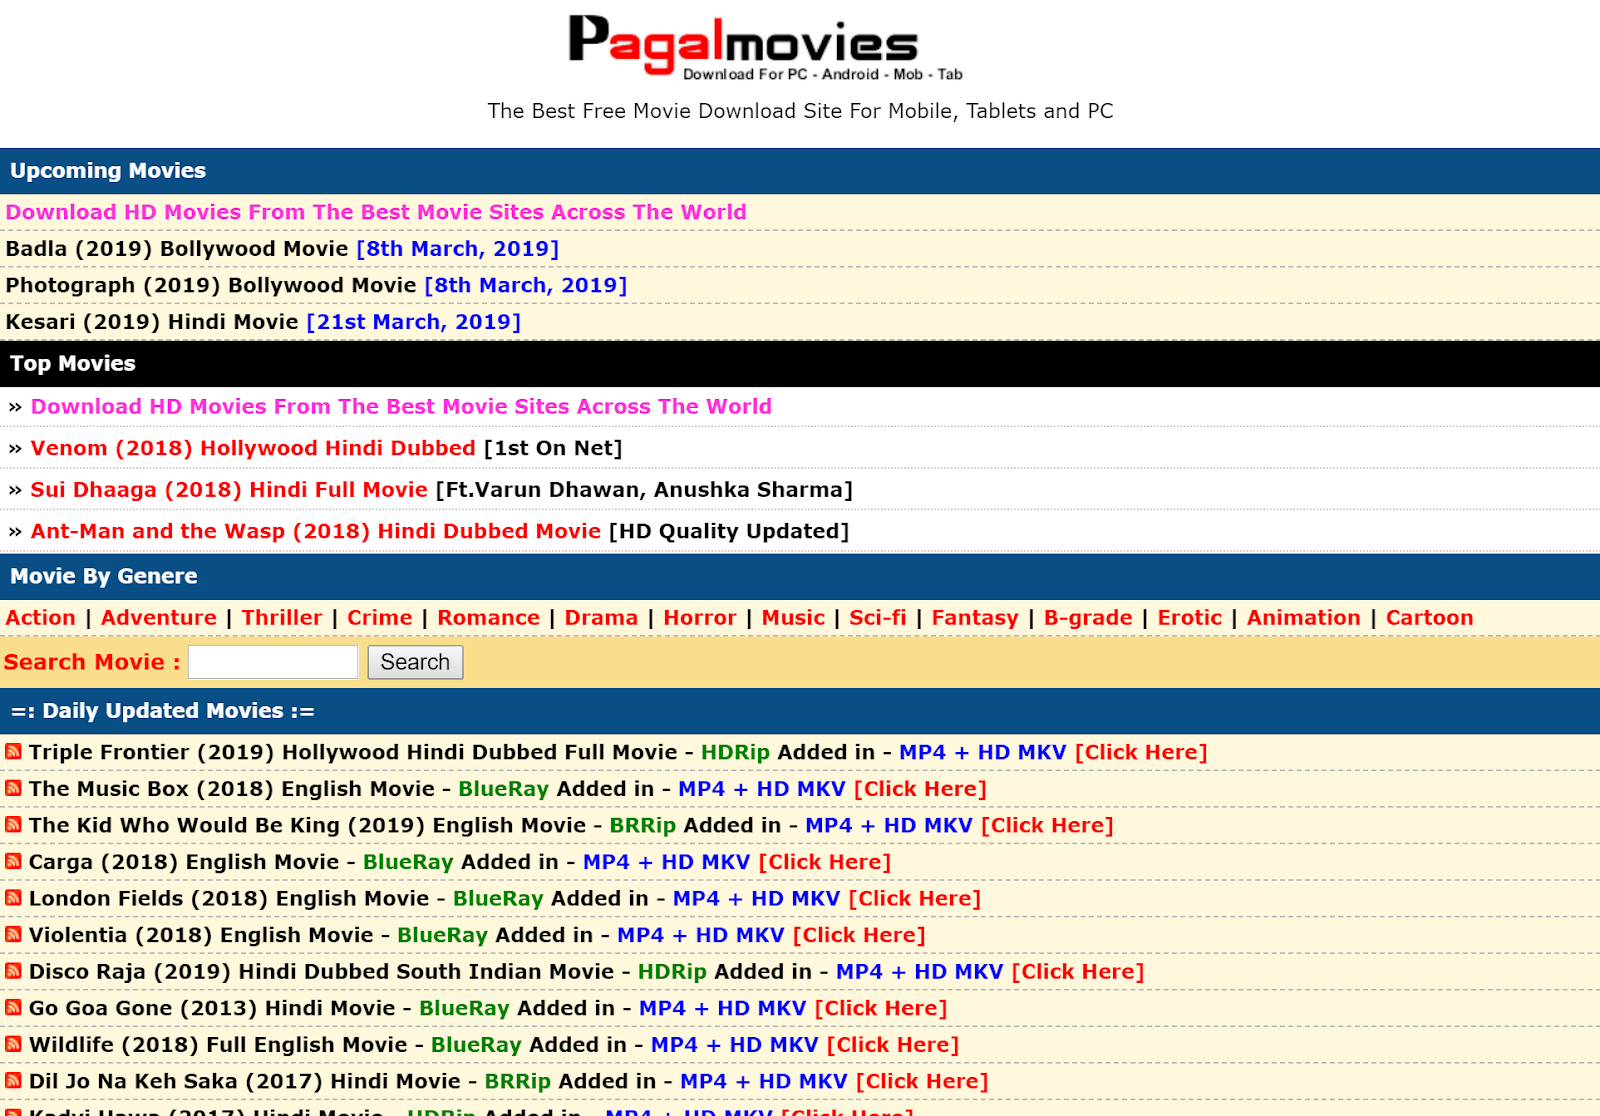 hd movies download sites for mobile free